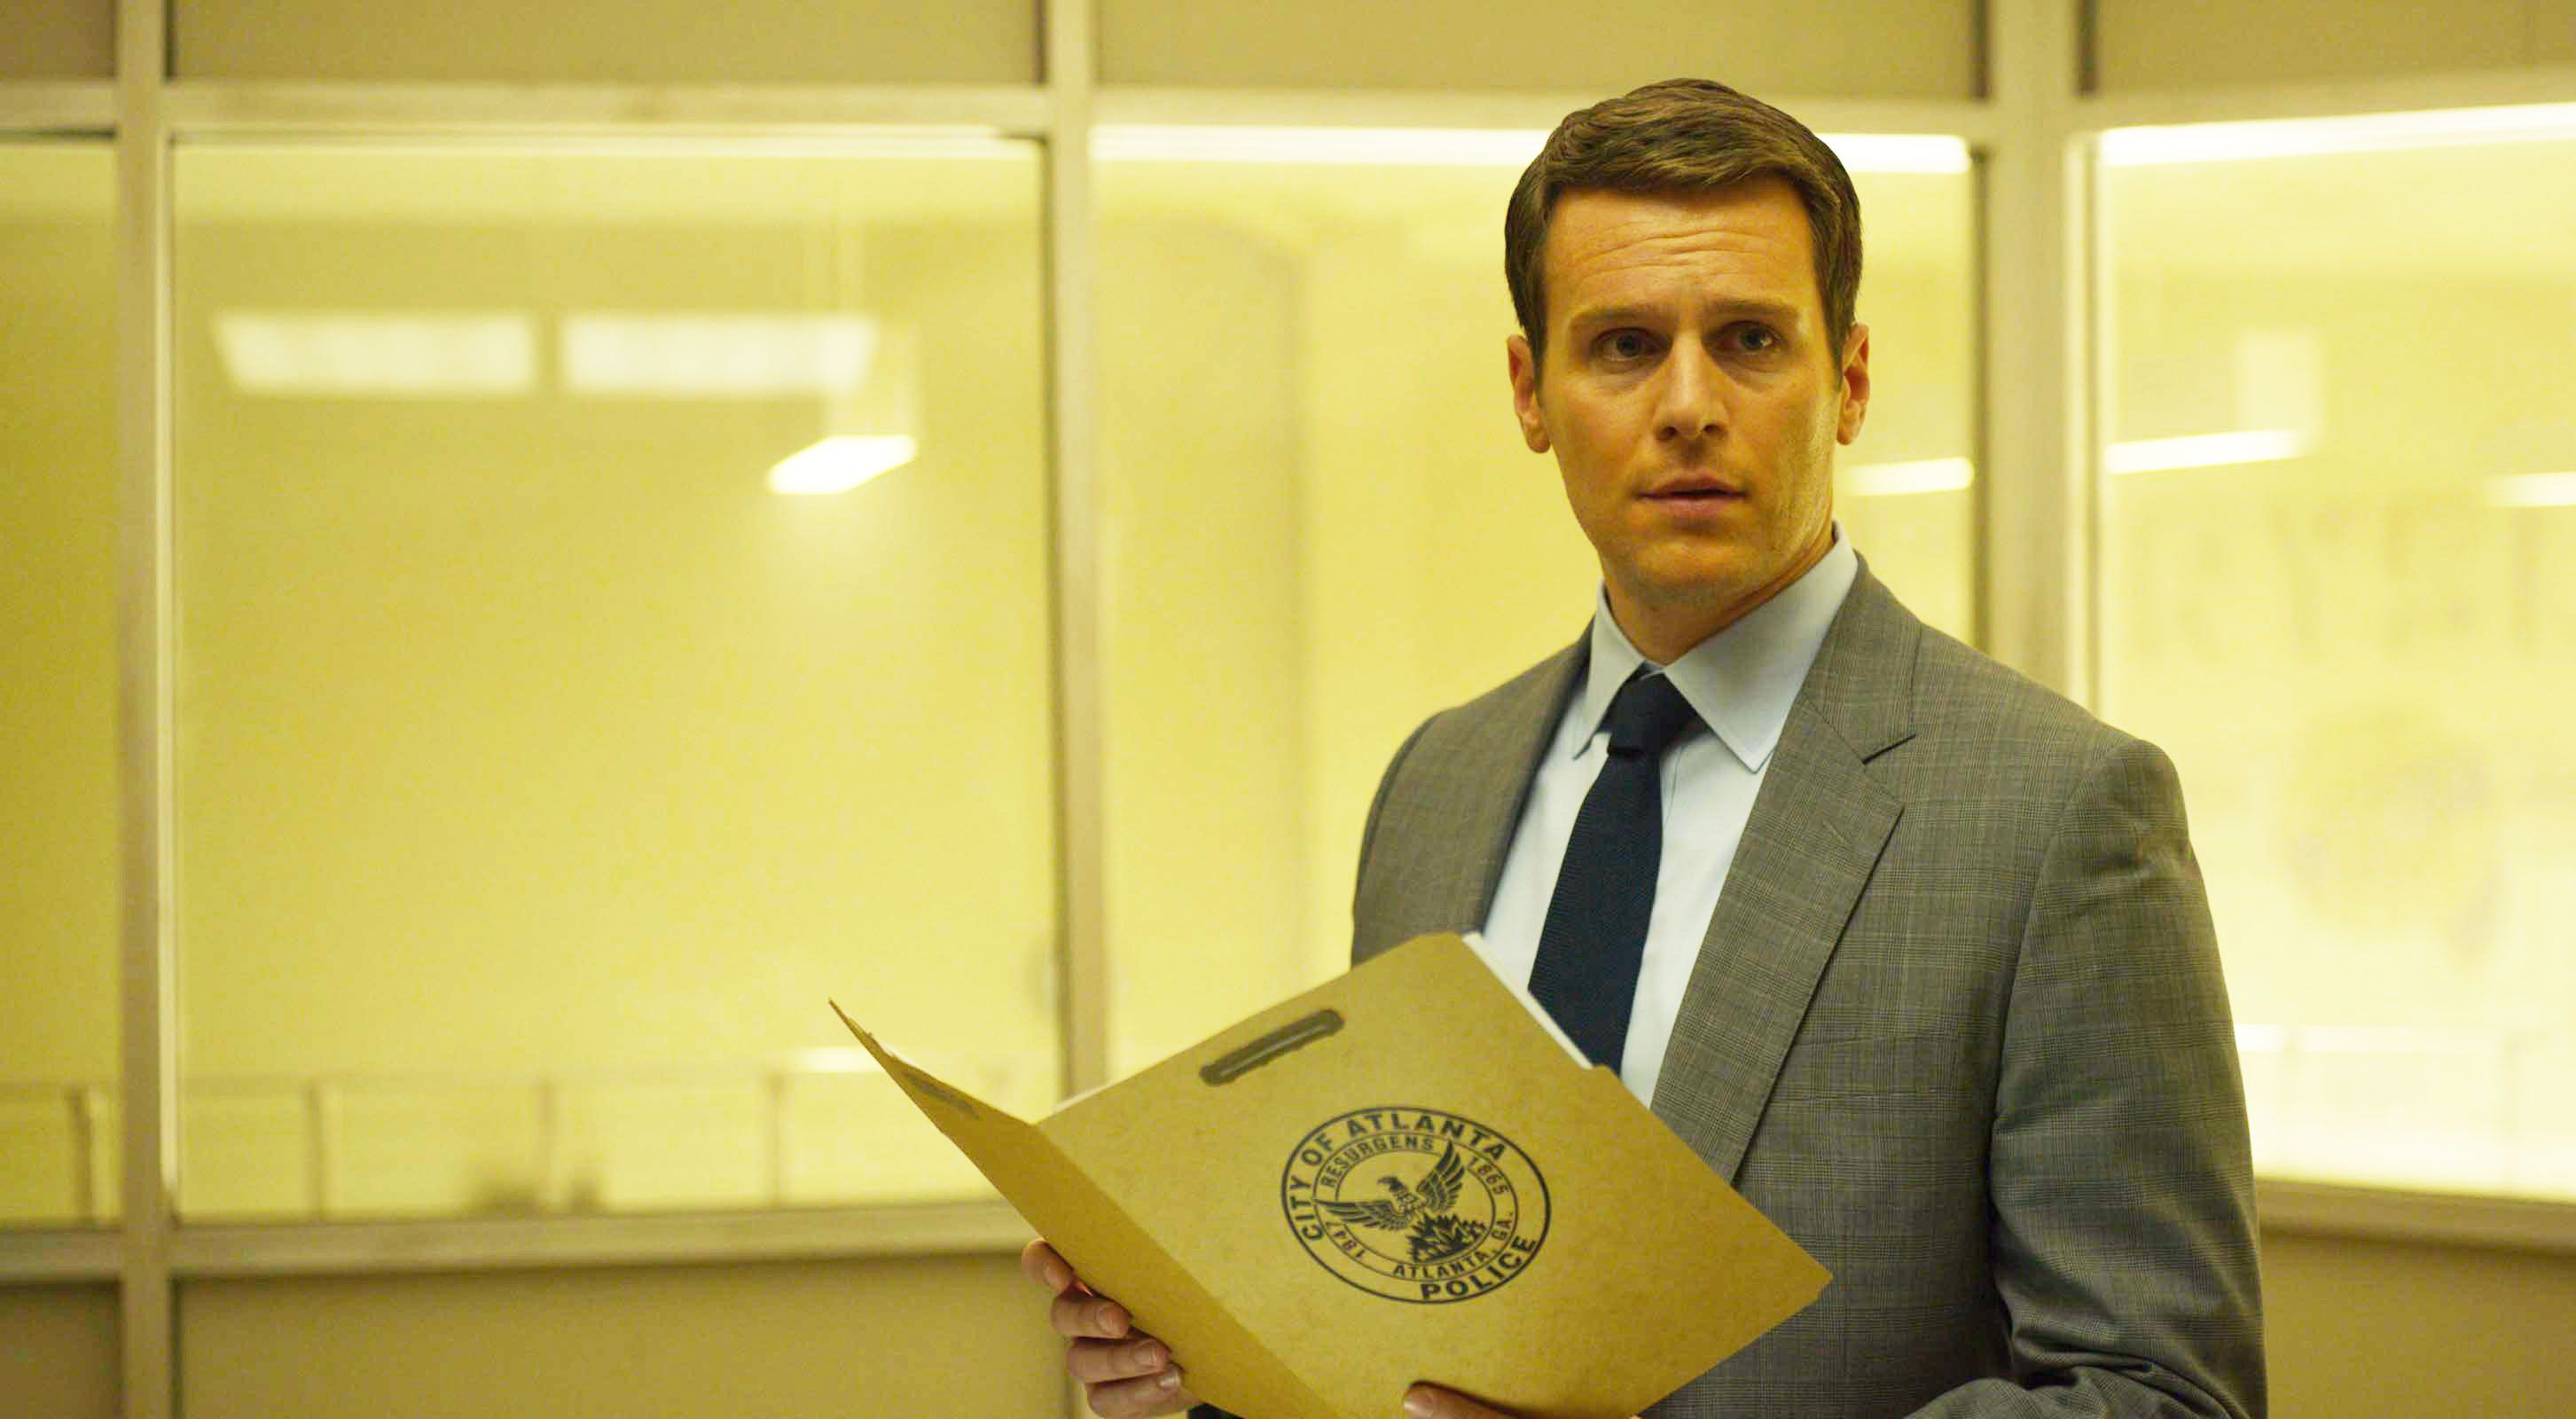 Is Holden Ford Based On A Real Person? The True Story Of 'Mindhunter's' FBI Agent